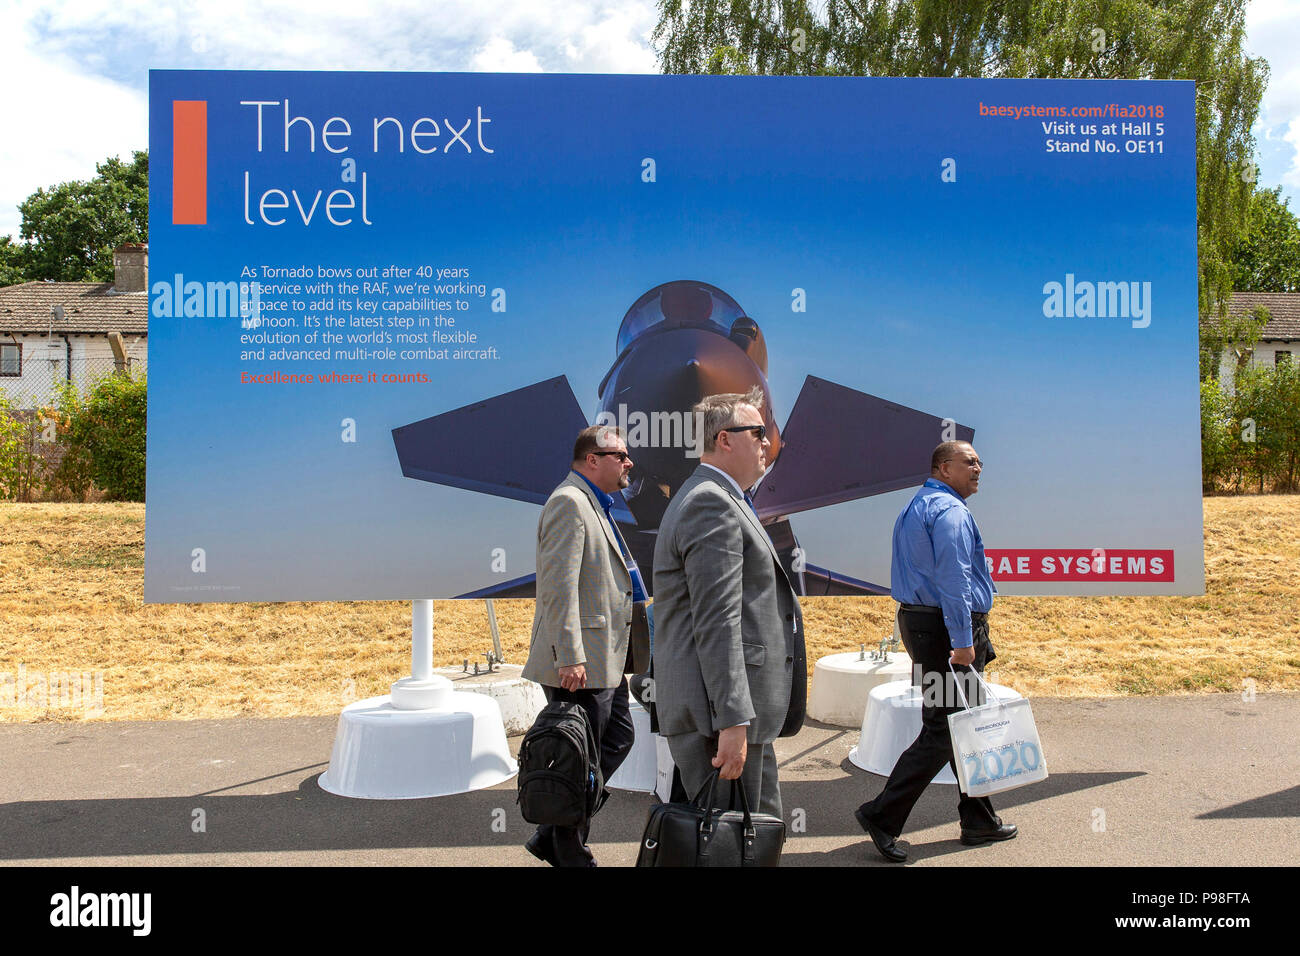 Farnborough Airshow 2018 17th July Three Men Walk Past A BAE Systems Advertisement Hoarding At Trade Day